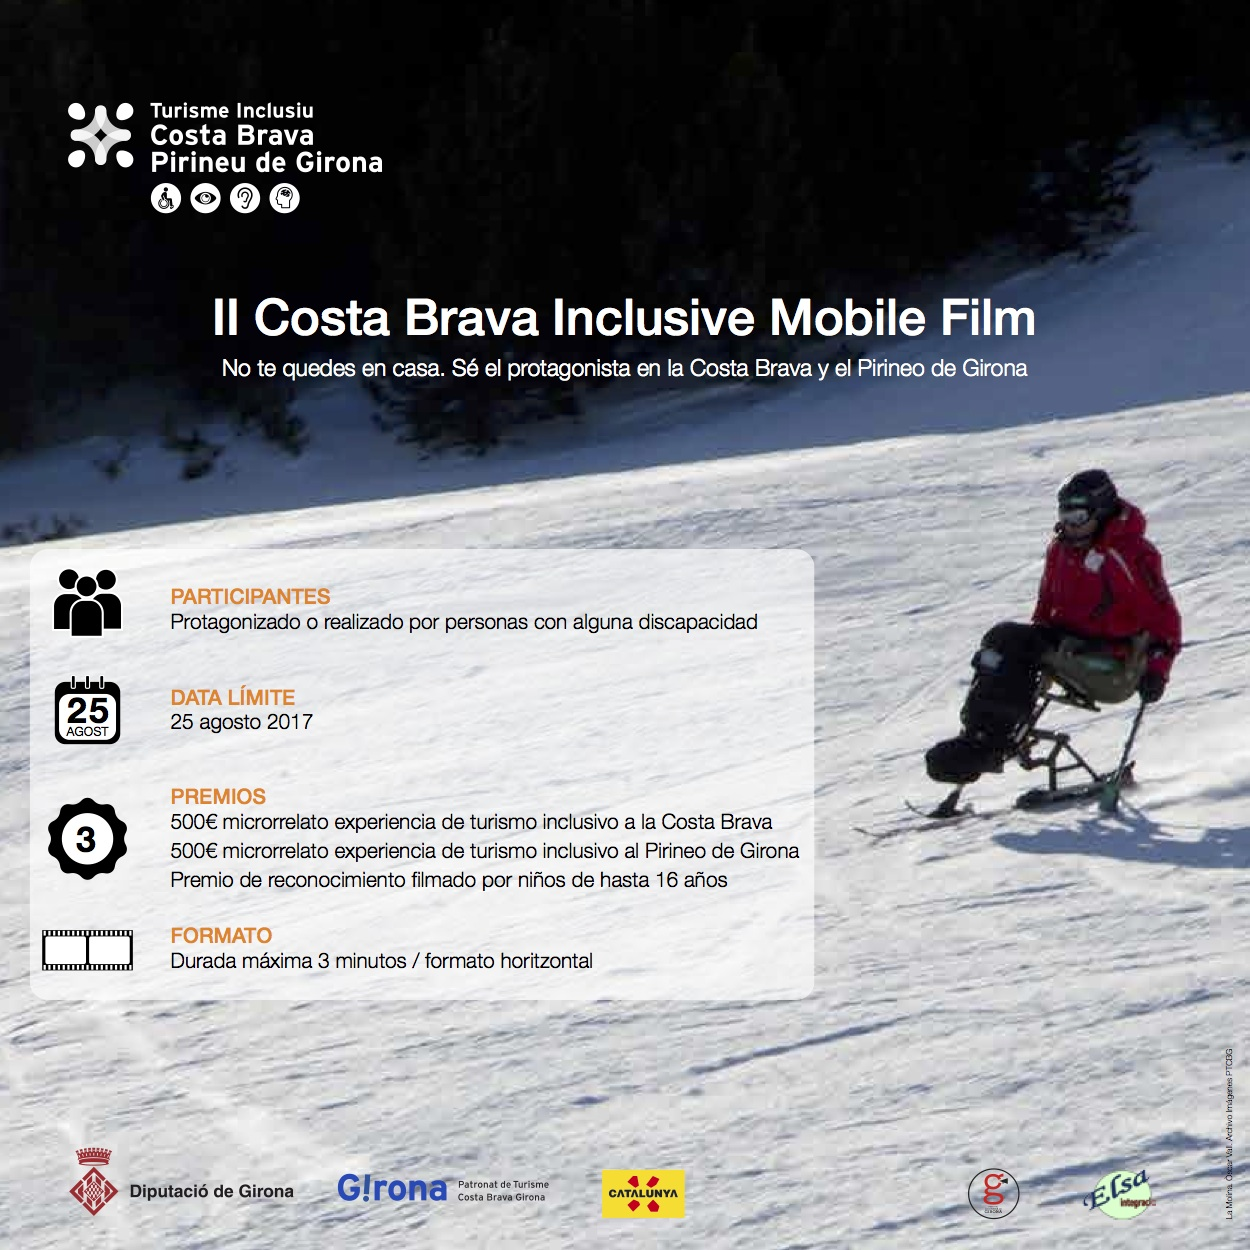 Costa Brava Inclusive Mobile Film